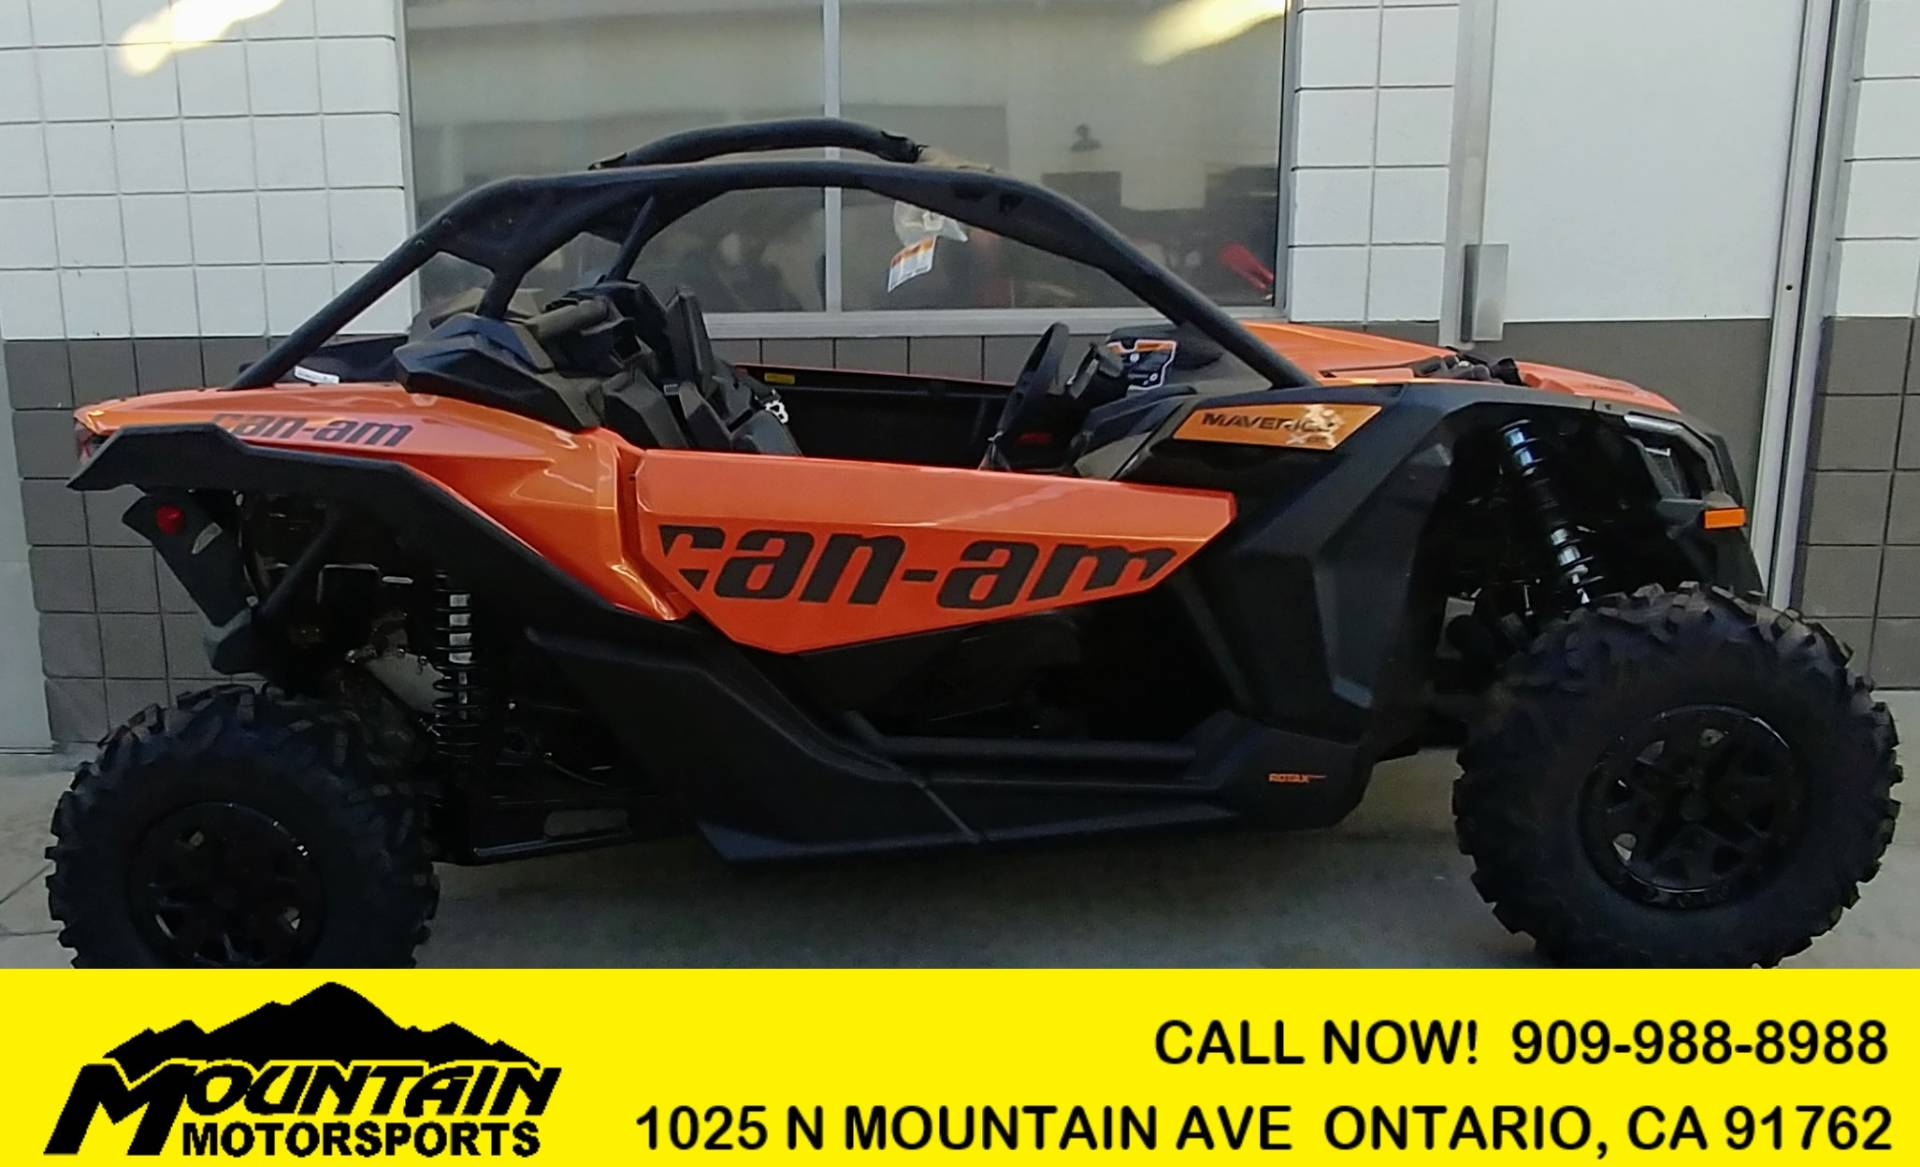 2019 Can-Am Maverick X3 X ds Turbo R for sale 42426